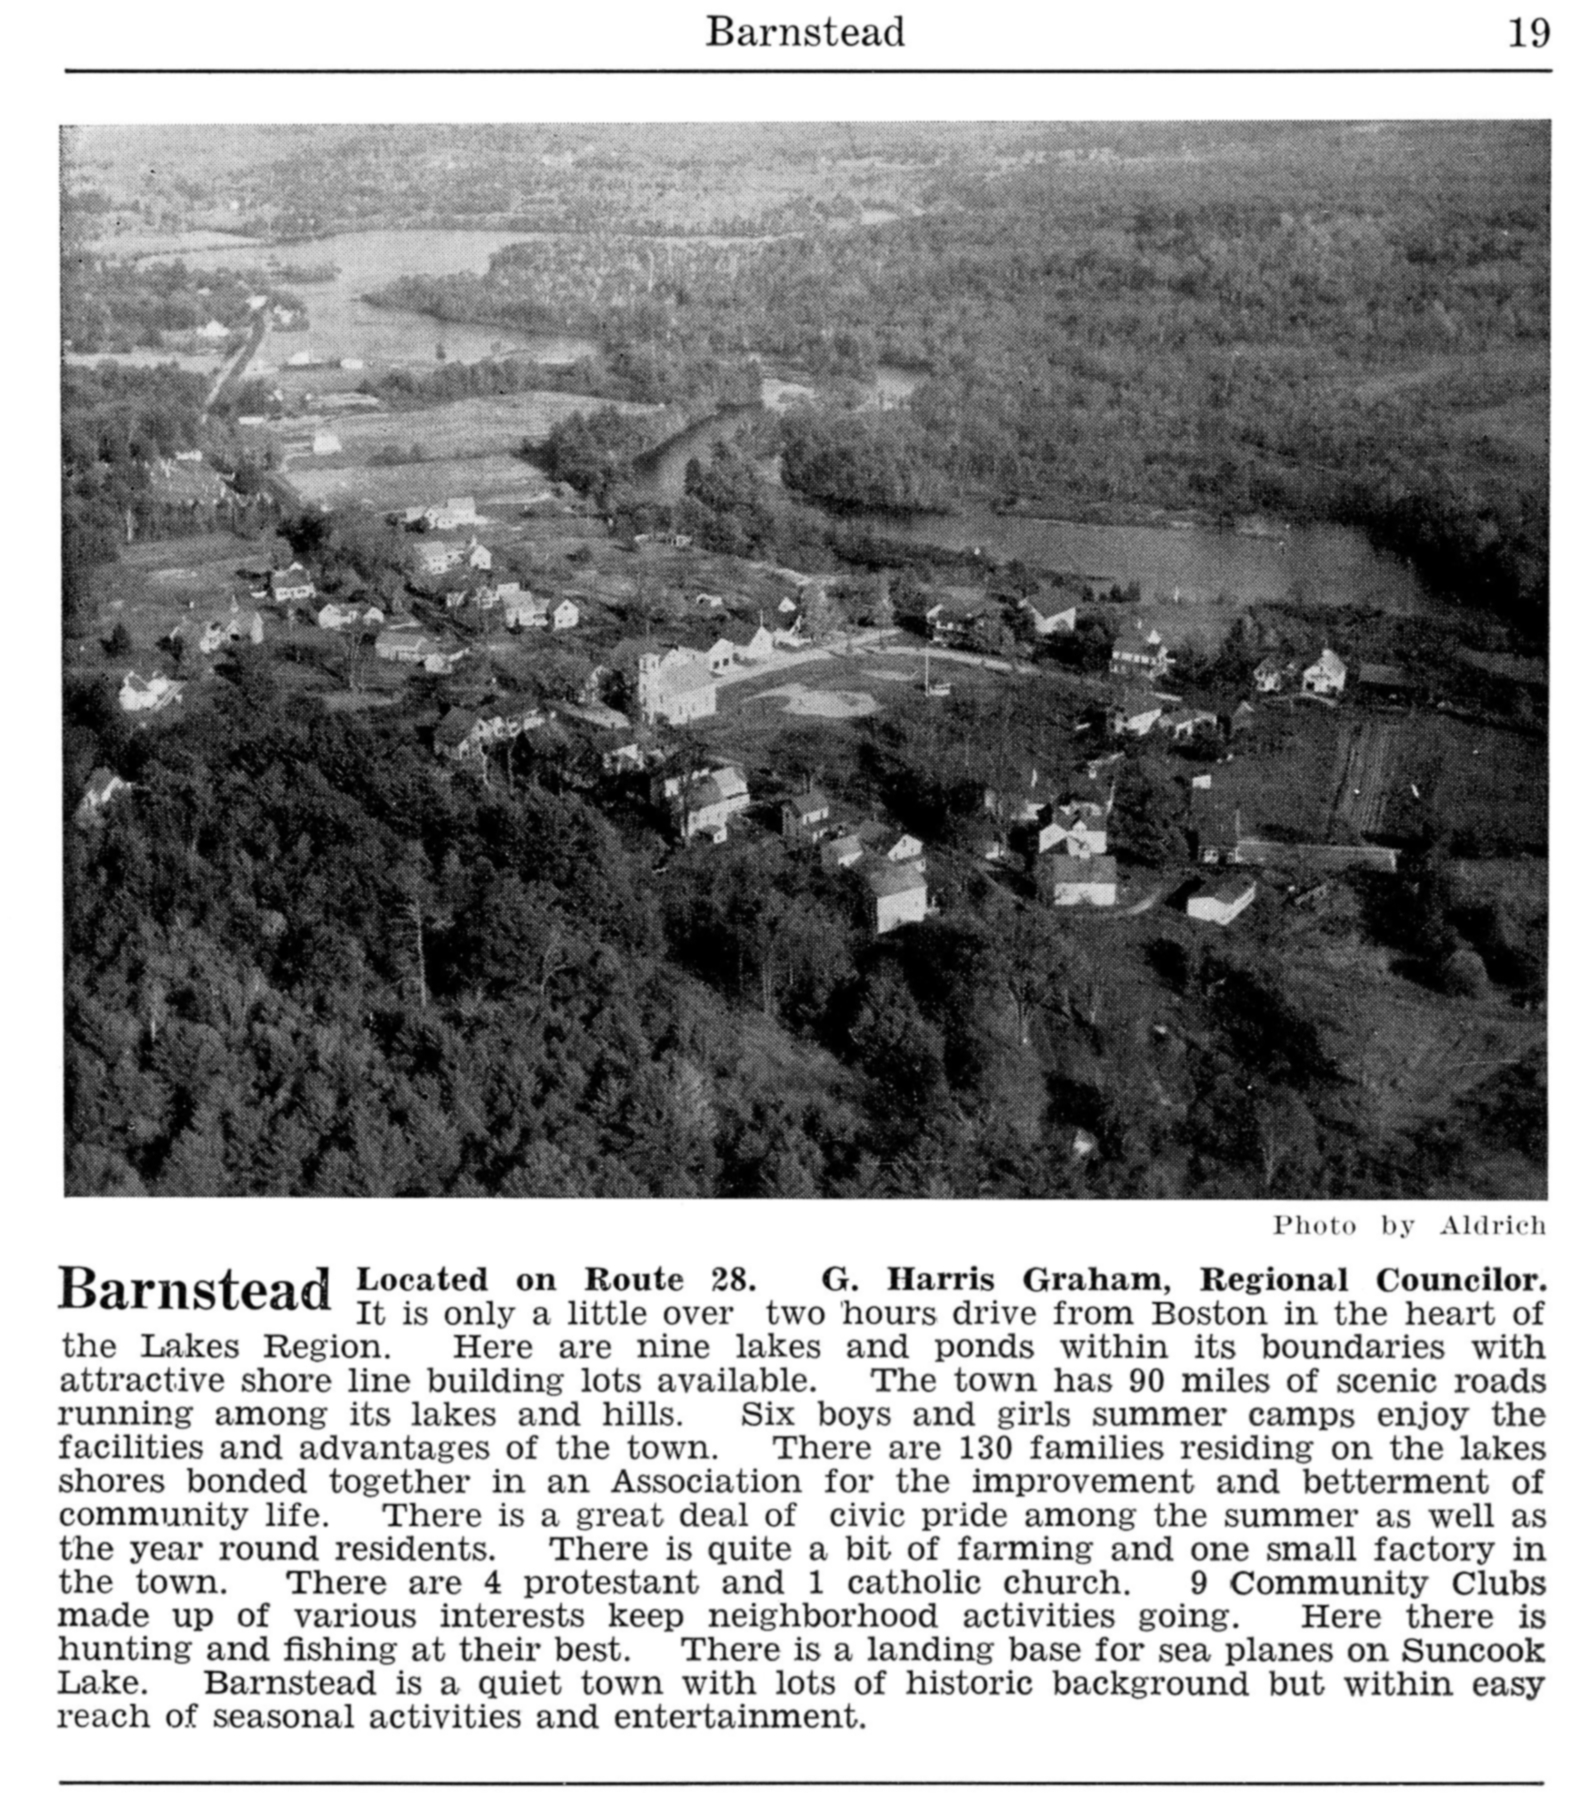 Barnstead - Lakes Region 1954